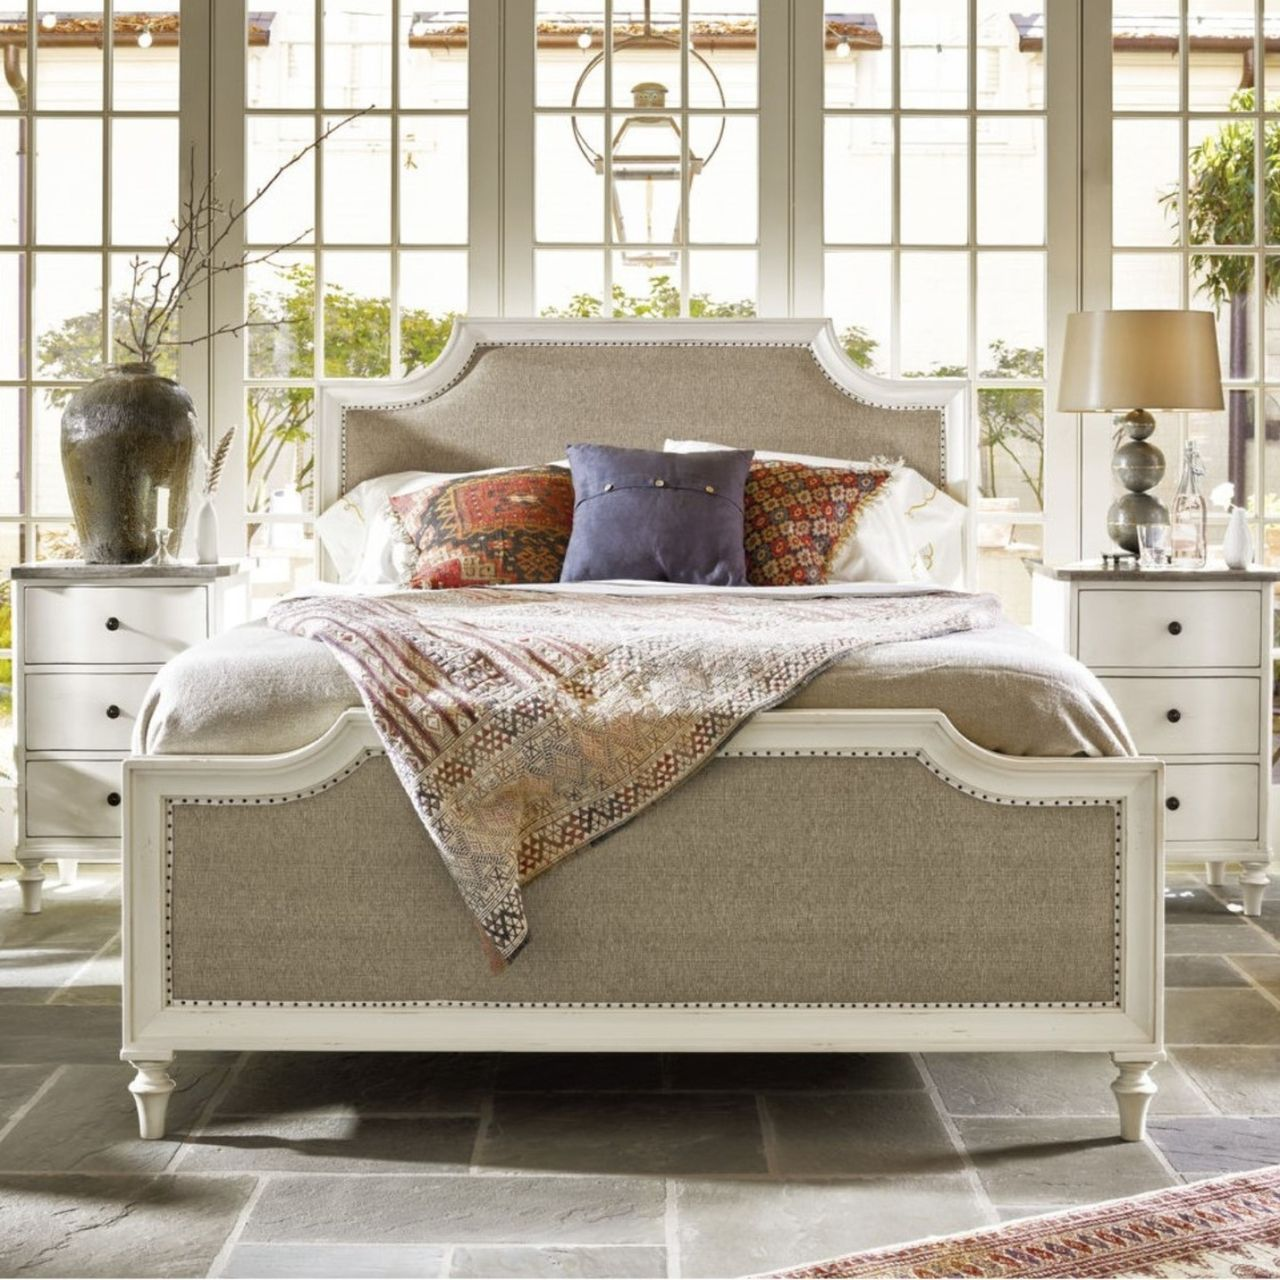 French Coastal White Upholstered Queen Bed Frame (With